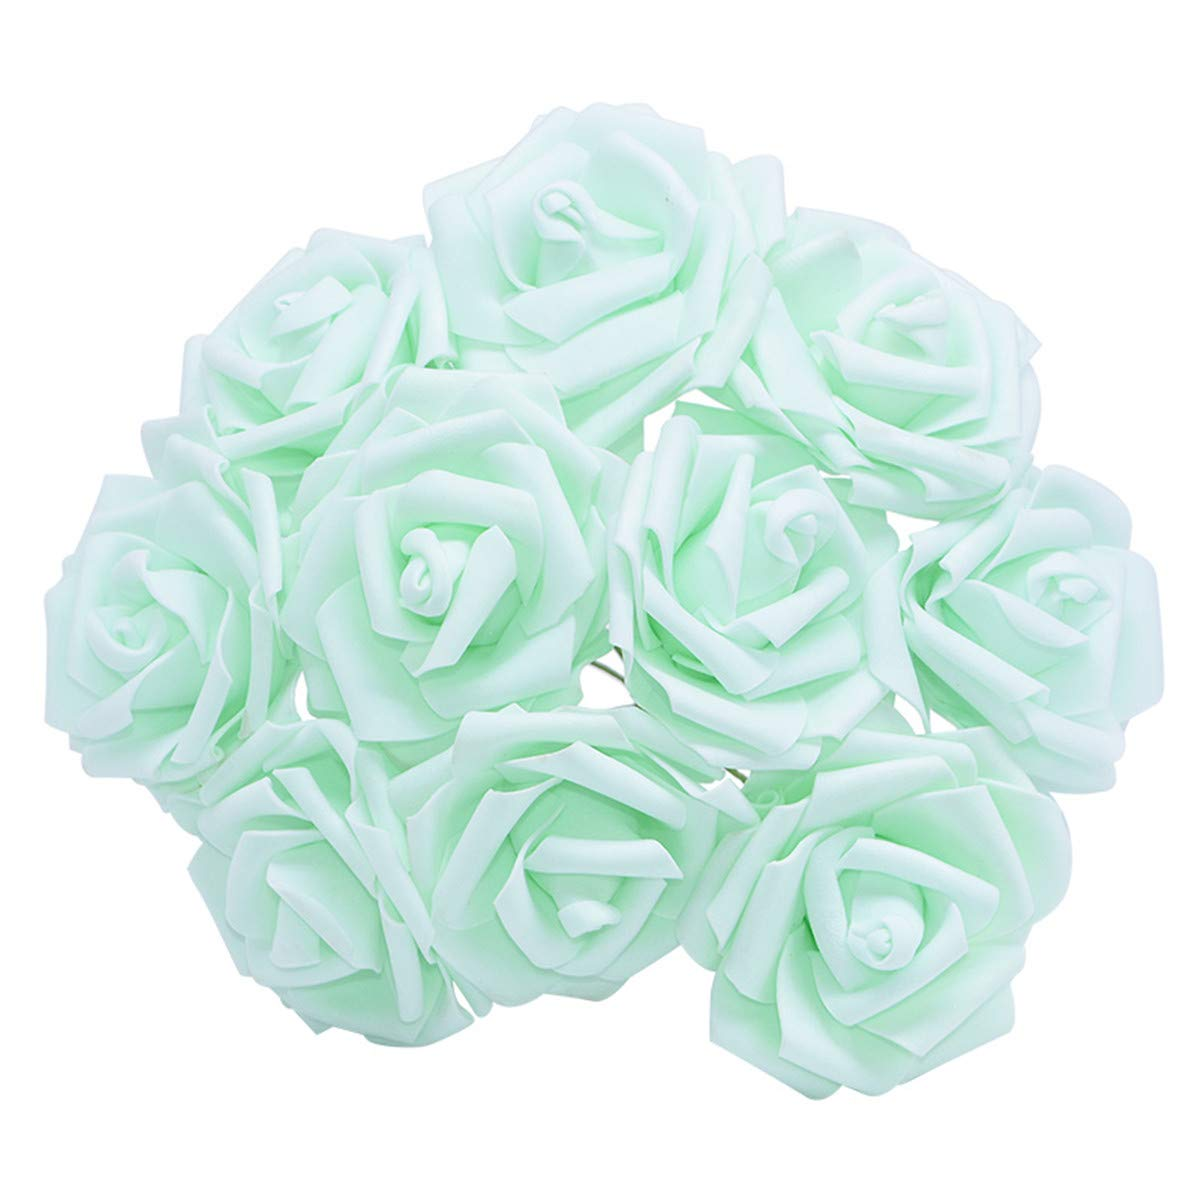 YONGSNOW Artificial Rose Flower 30Pcs PE Foam Roses Bulk with Stem Real Touch 3D Rose for DIY Wedding Bouquets Centerpieces Bridal Shower Party Home Decoration (Light Green)